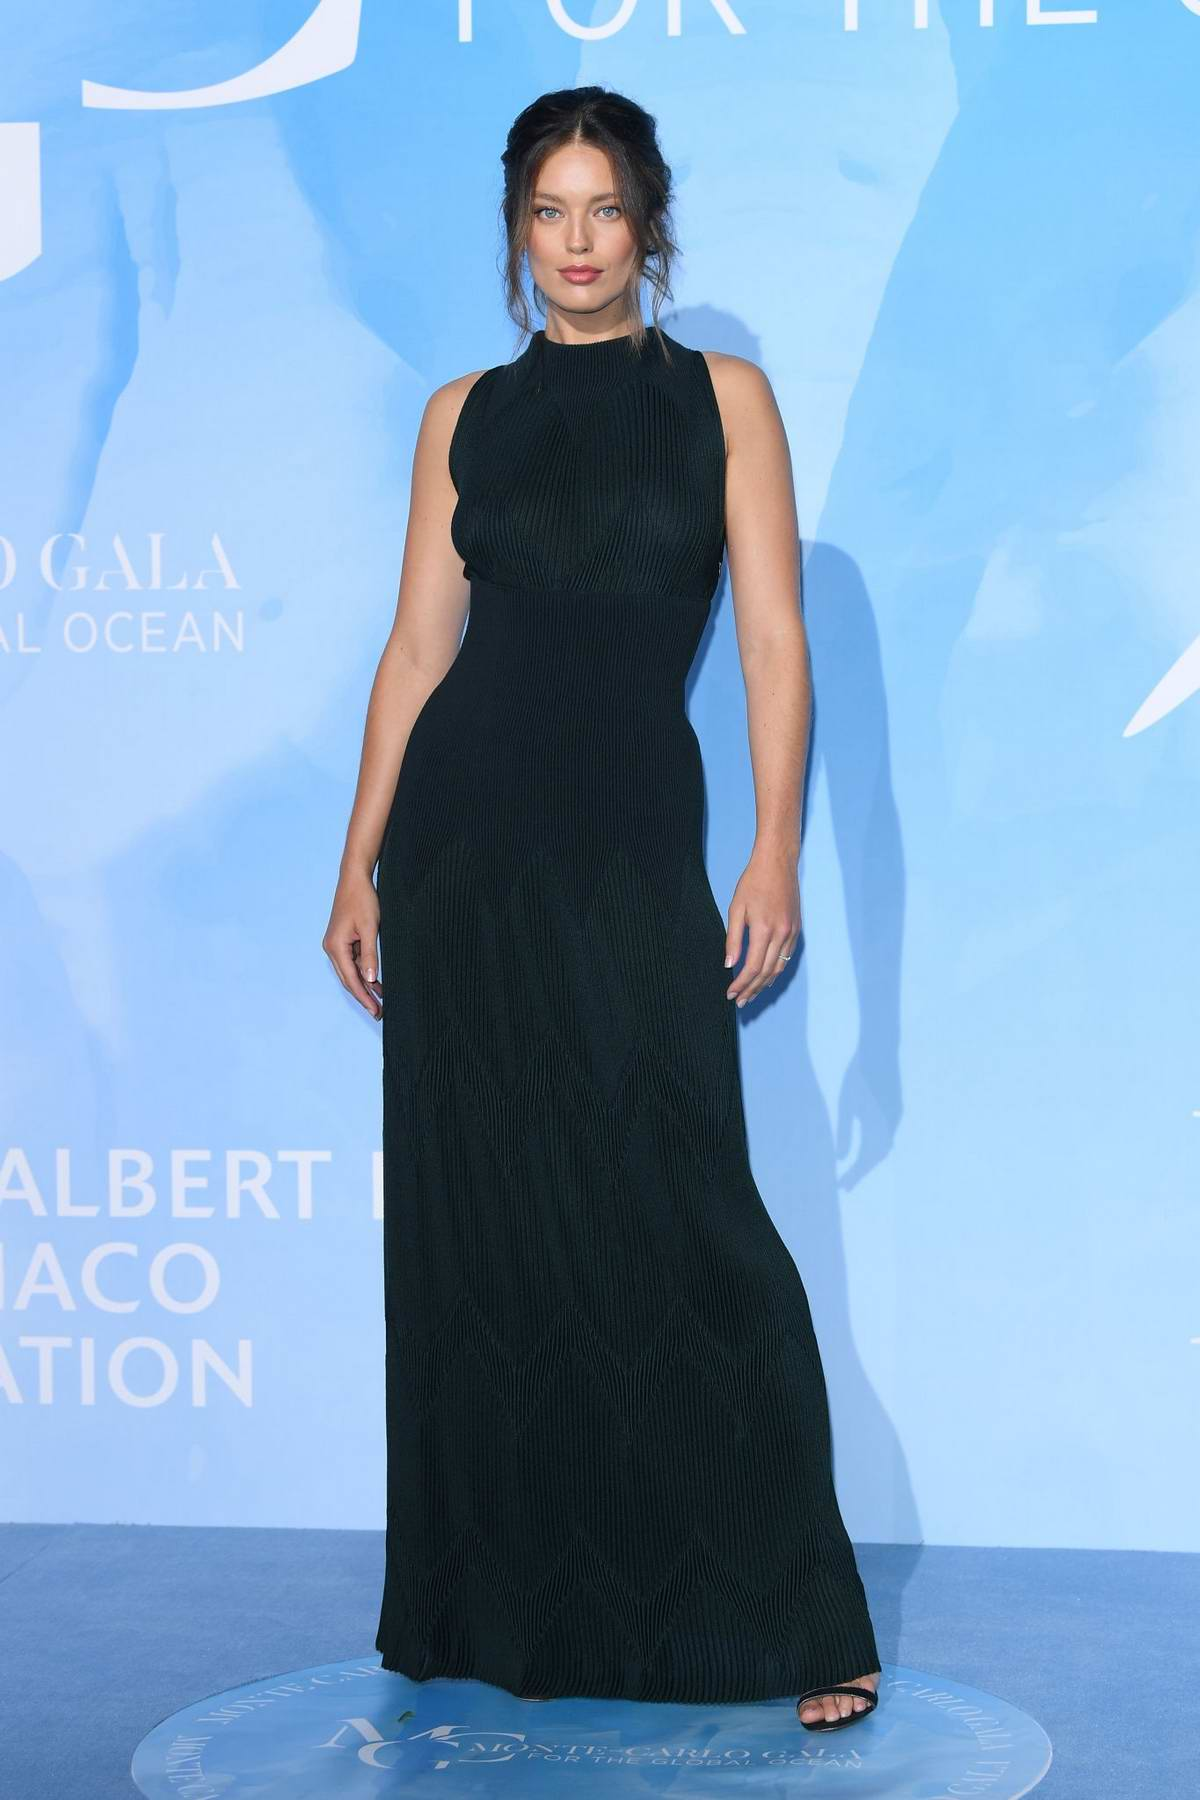 Emily DiDonato attends the Gala for the Global Ocean in Monte Carlo, Monaco